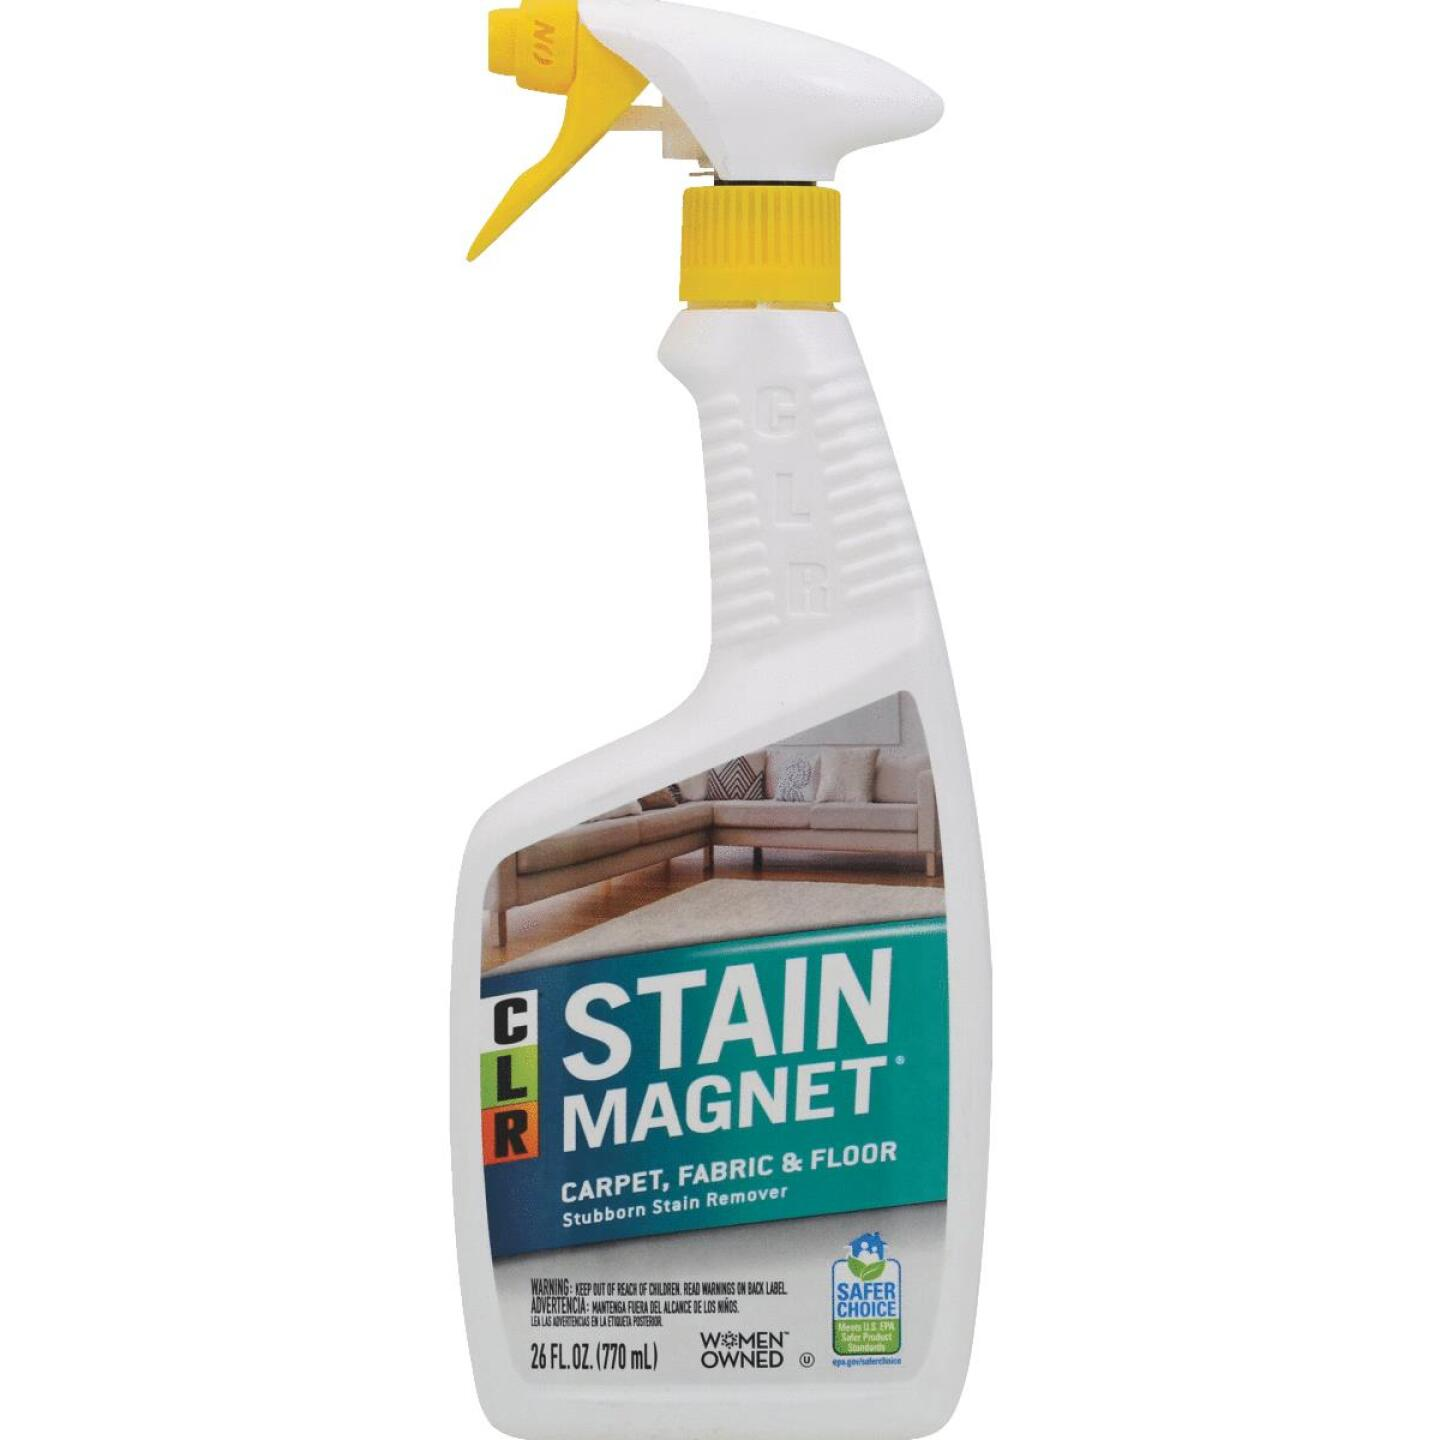 CLR Stain Magnet 26 Oz. All-Purpose Cleaner Image 1